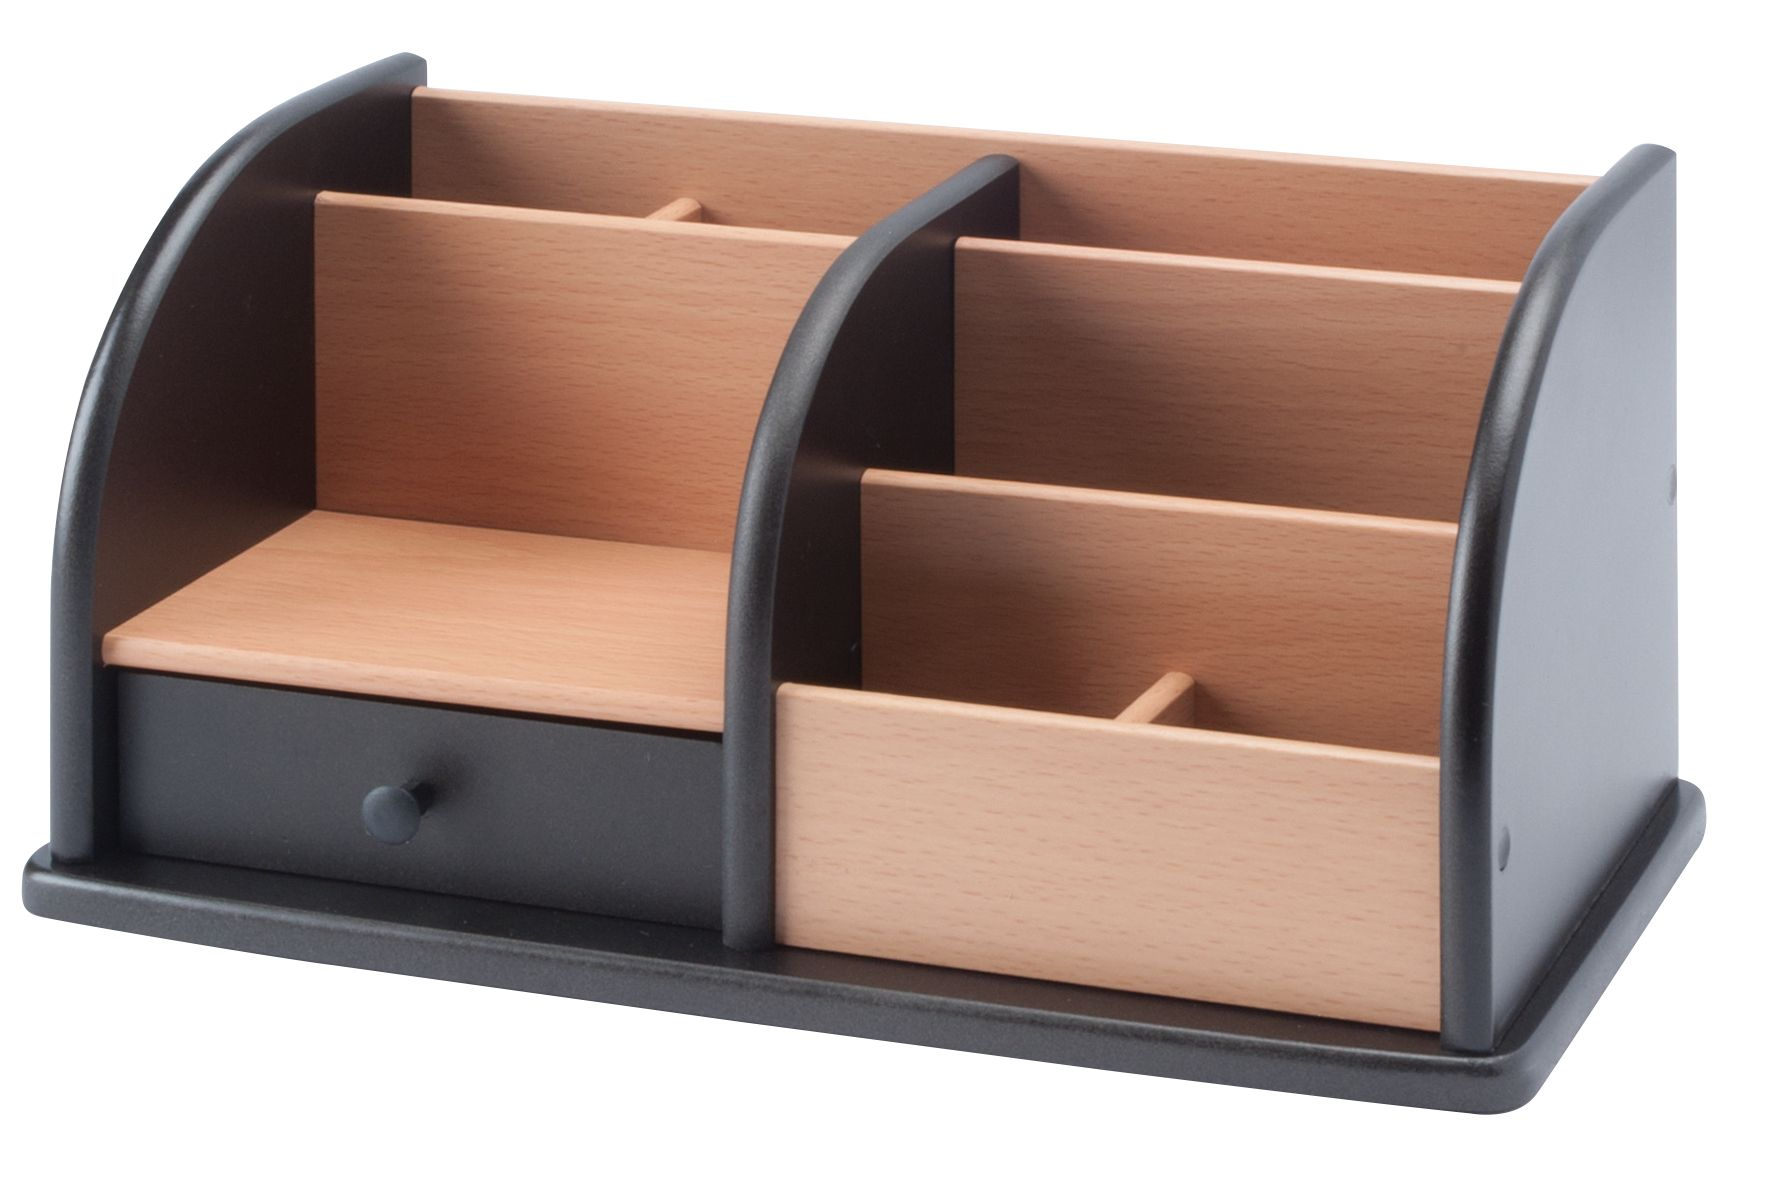 Ikea desk organizer homesfeed - Ikea desk drawer organizer ...